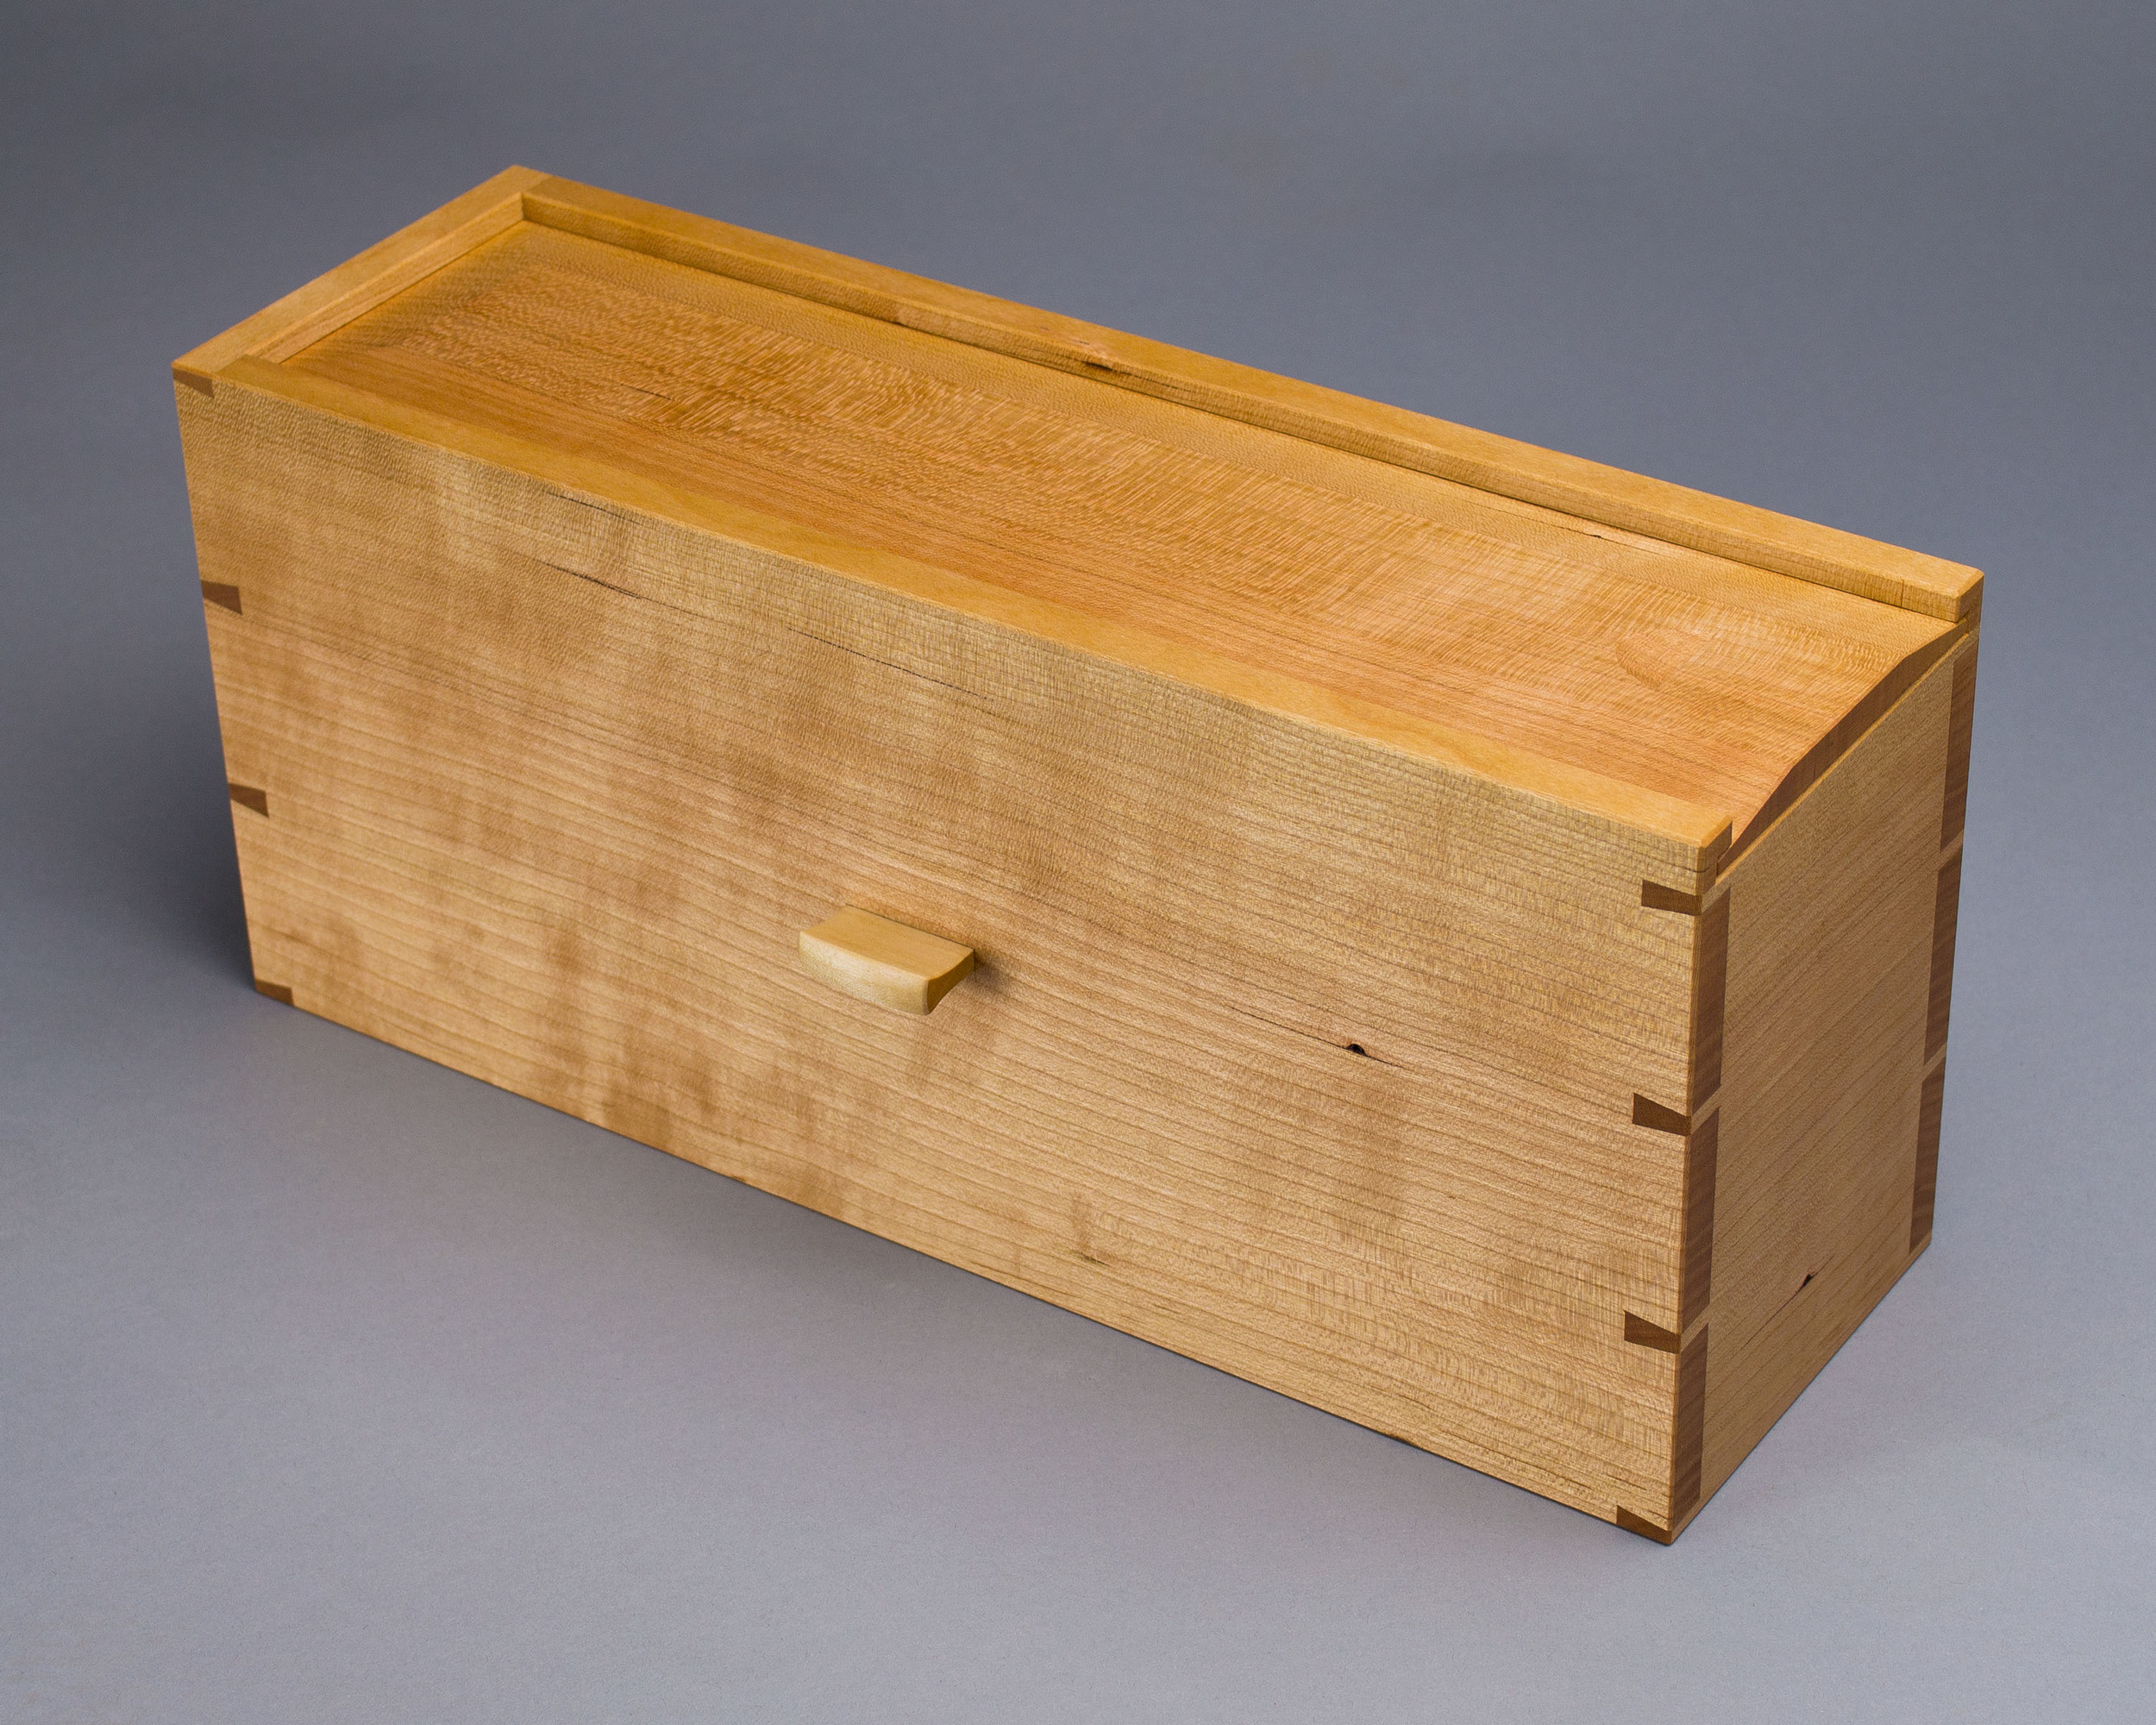 The hidden compartment, a dovetailed box made of quartersawn cherry.